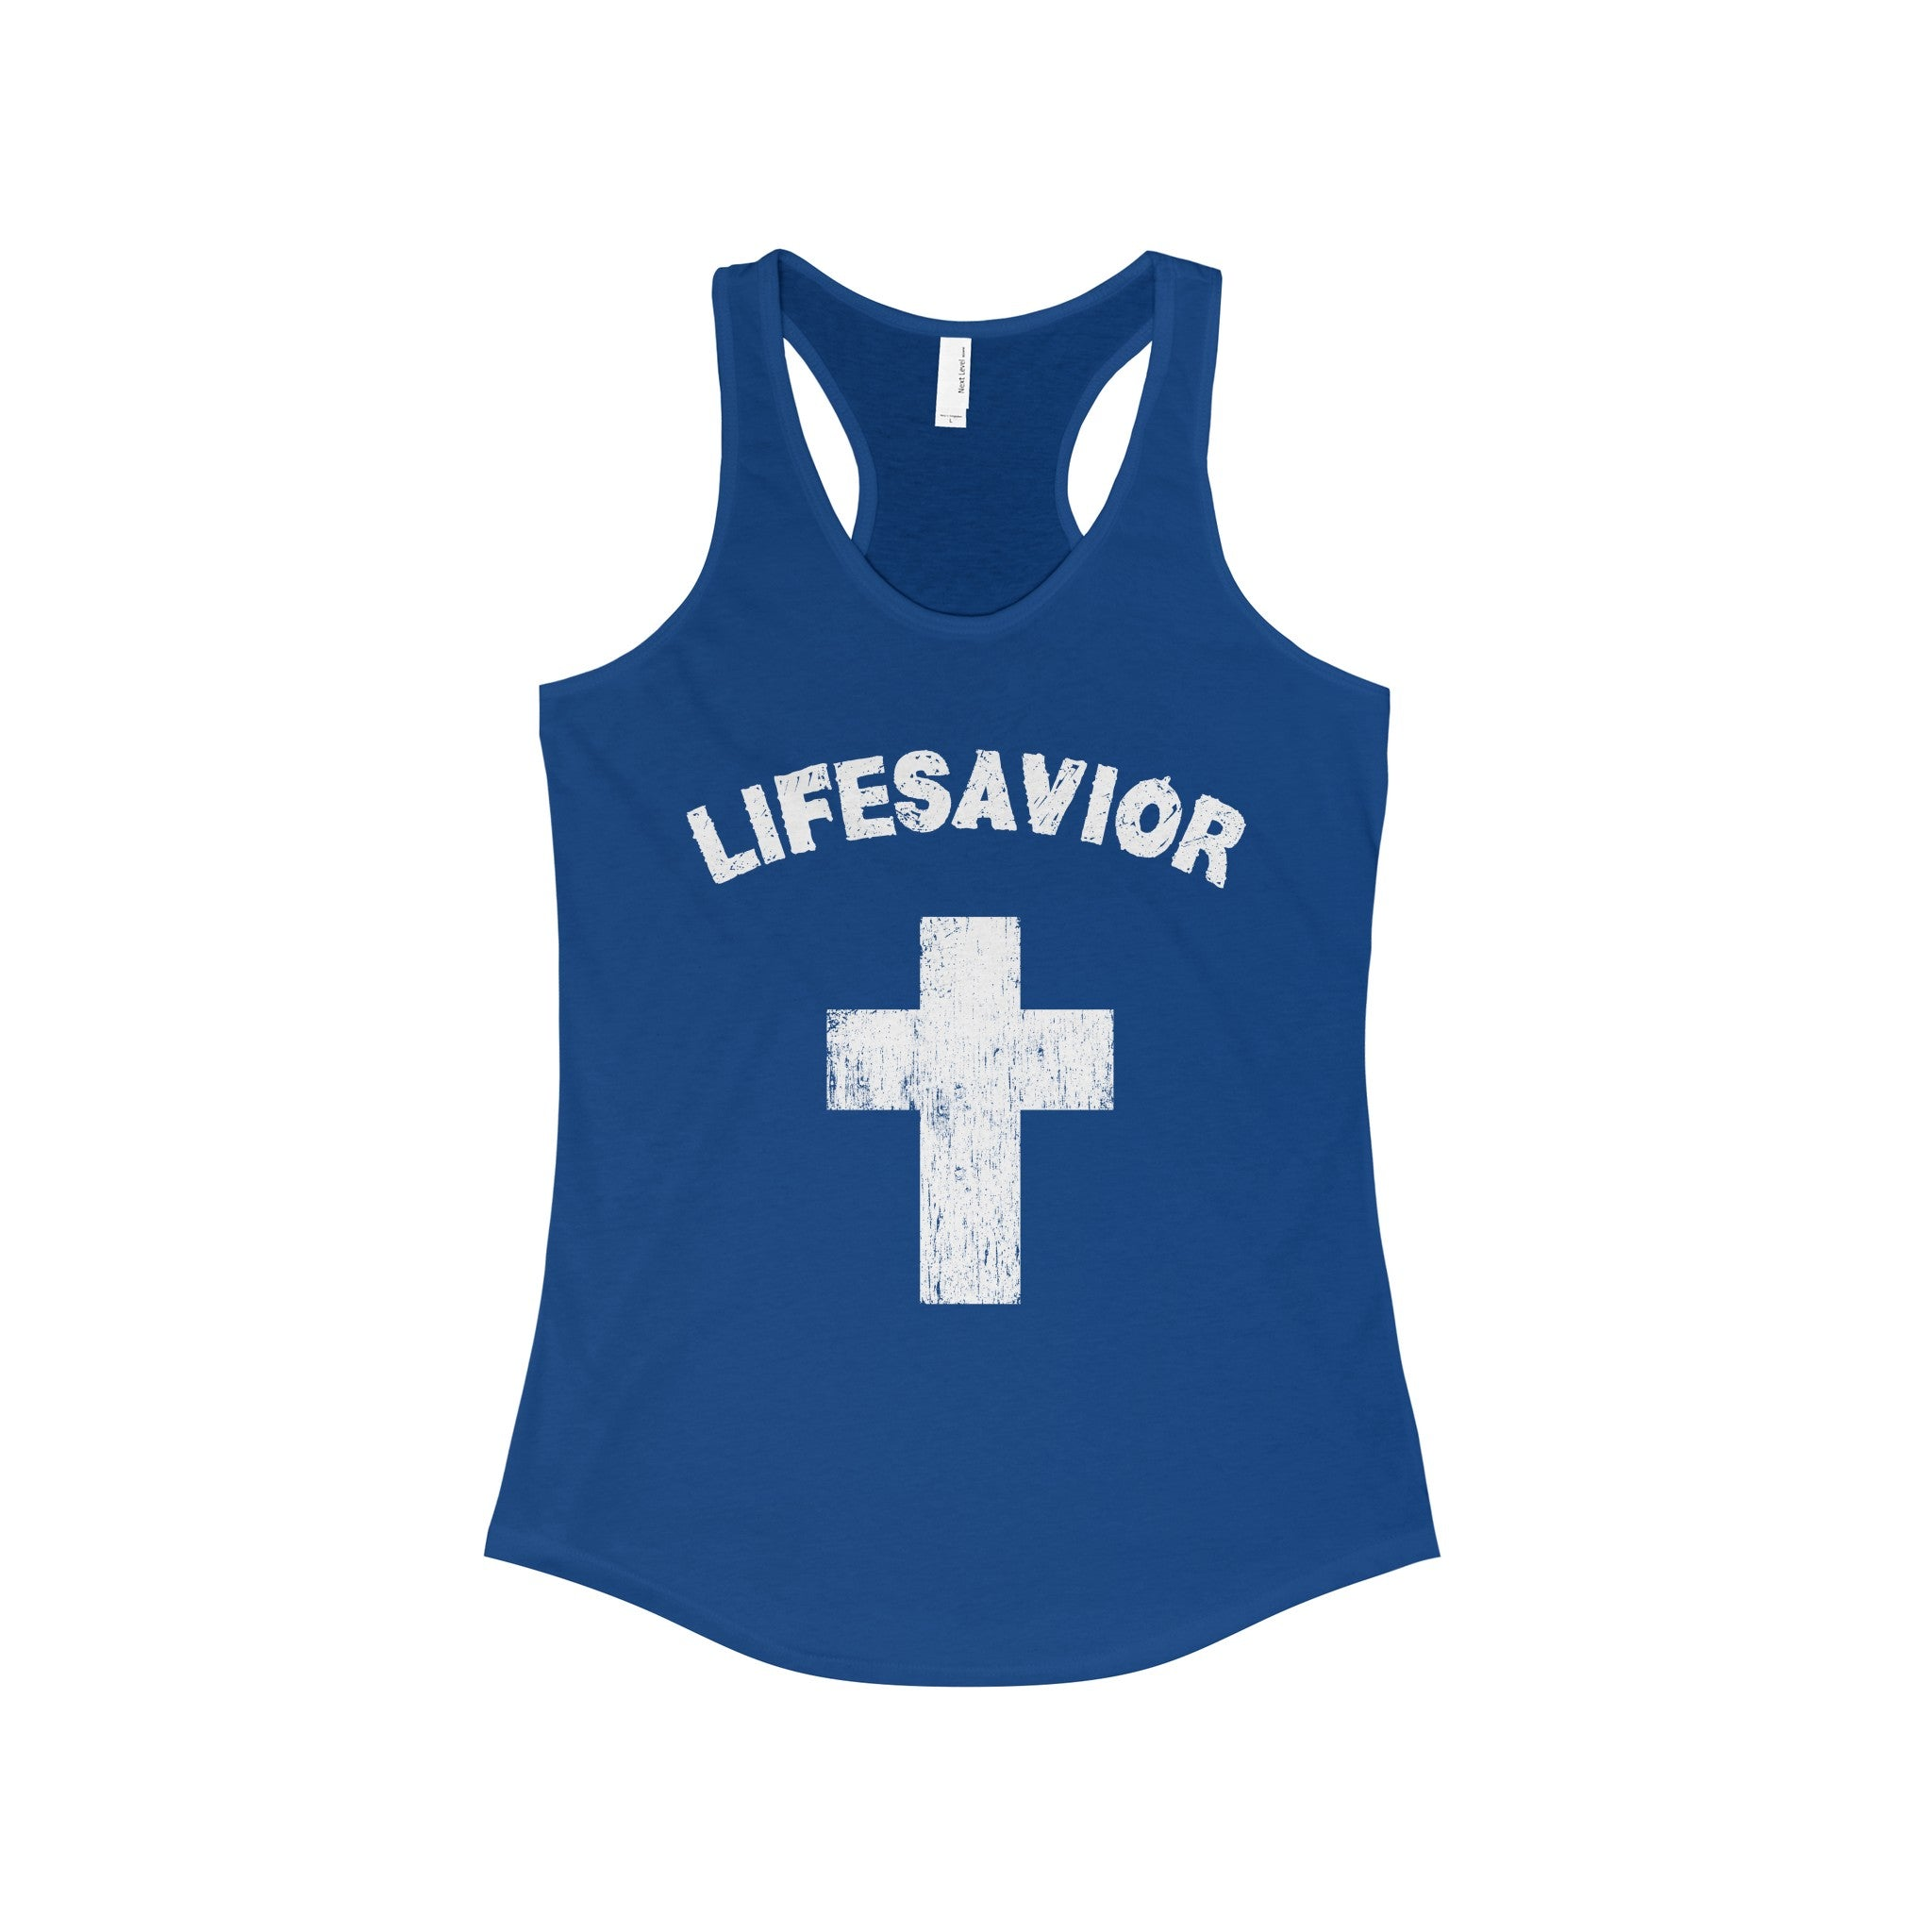 LifeSavior Women's Racerback Tank